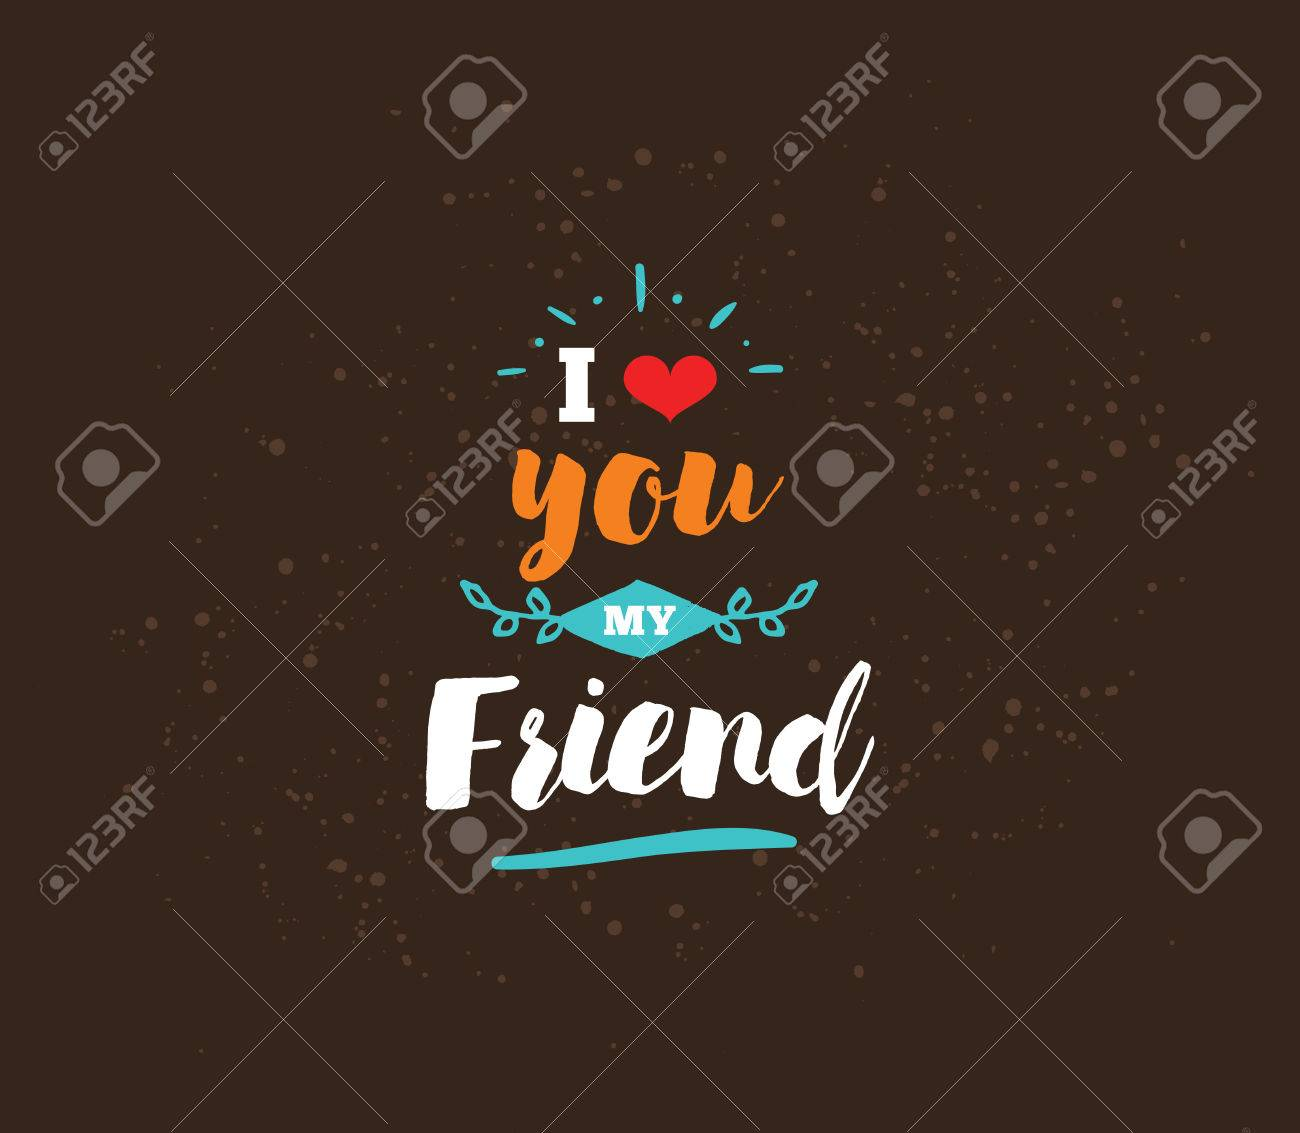 Image of: Funny Happy Friendship Day Vector Typographic Design Inspirational Quote About Friendship Usable As Greeting Cards People Info Happy Friendship Day Vector Typographic Design Inspirational